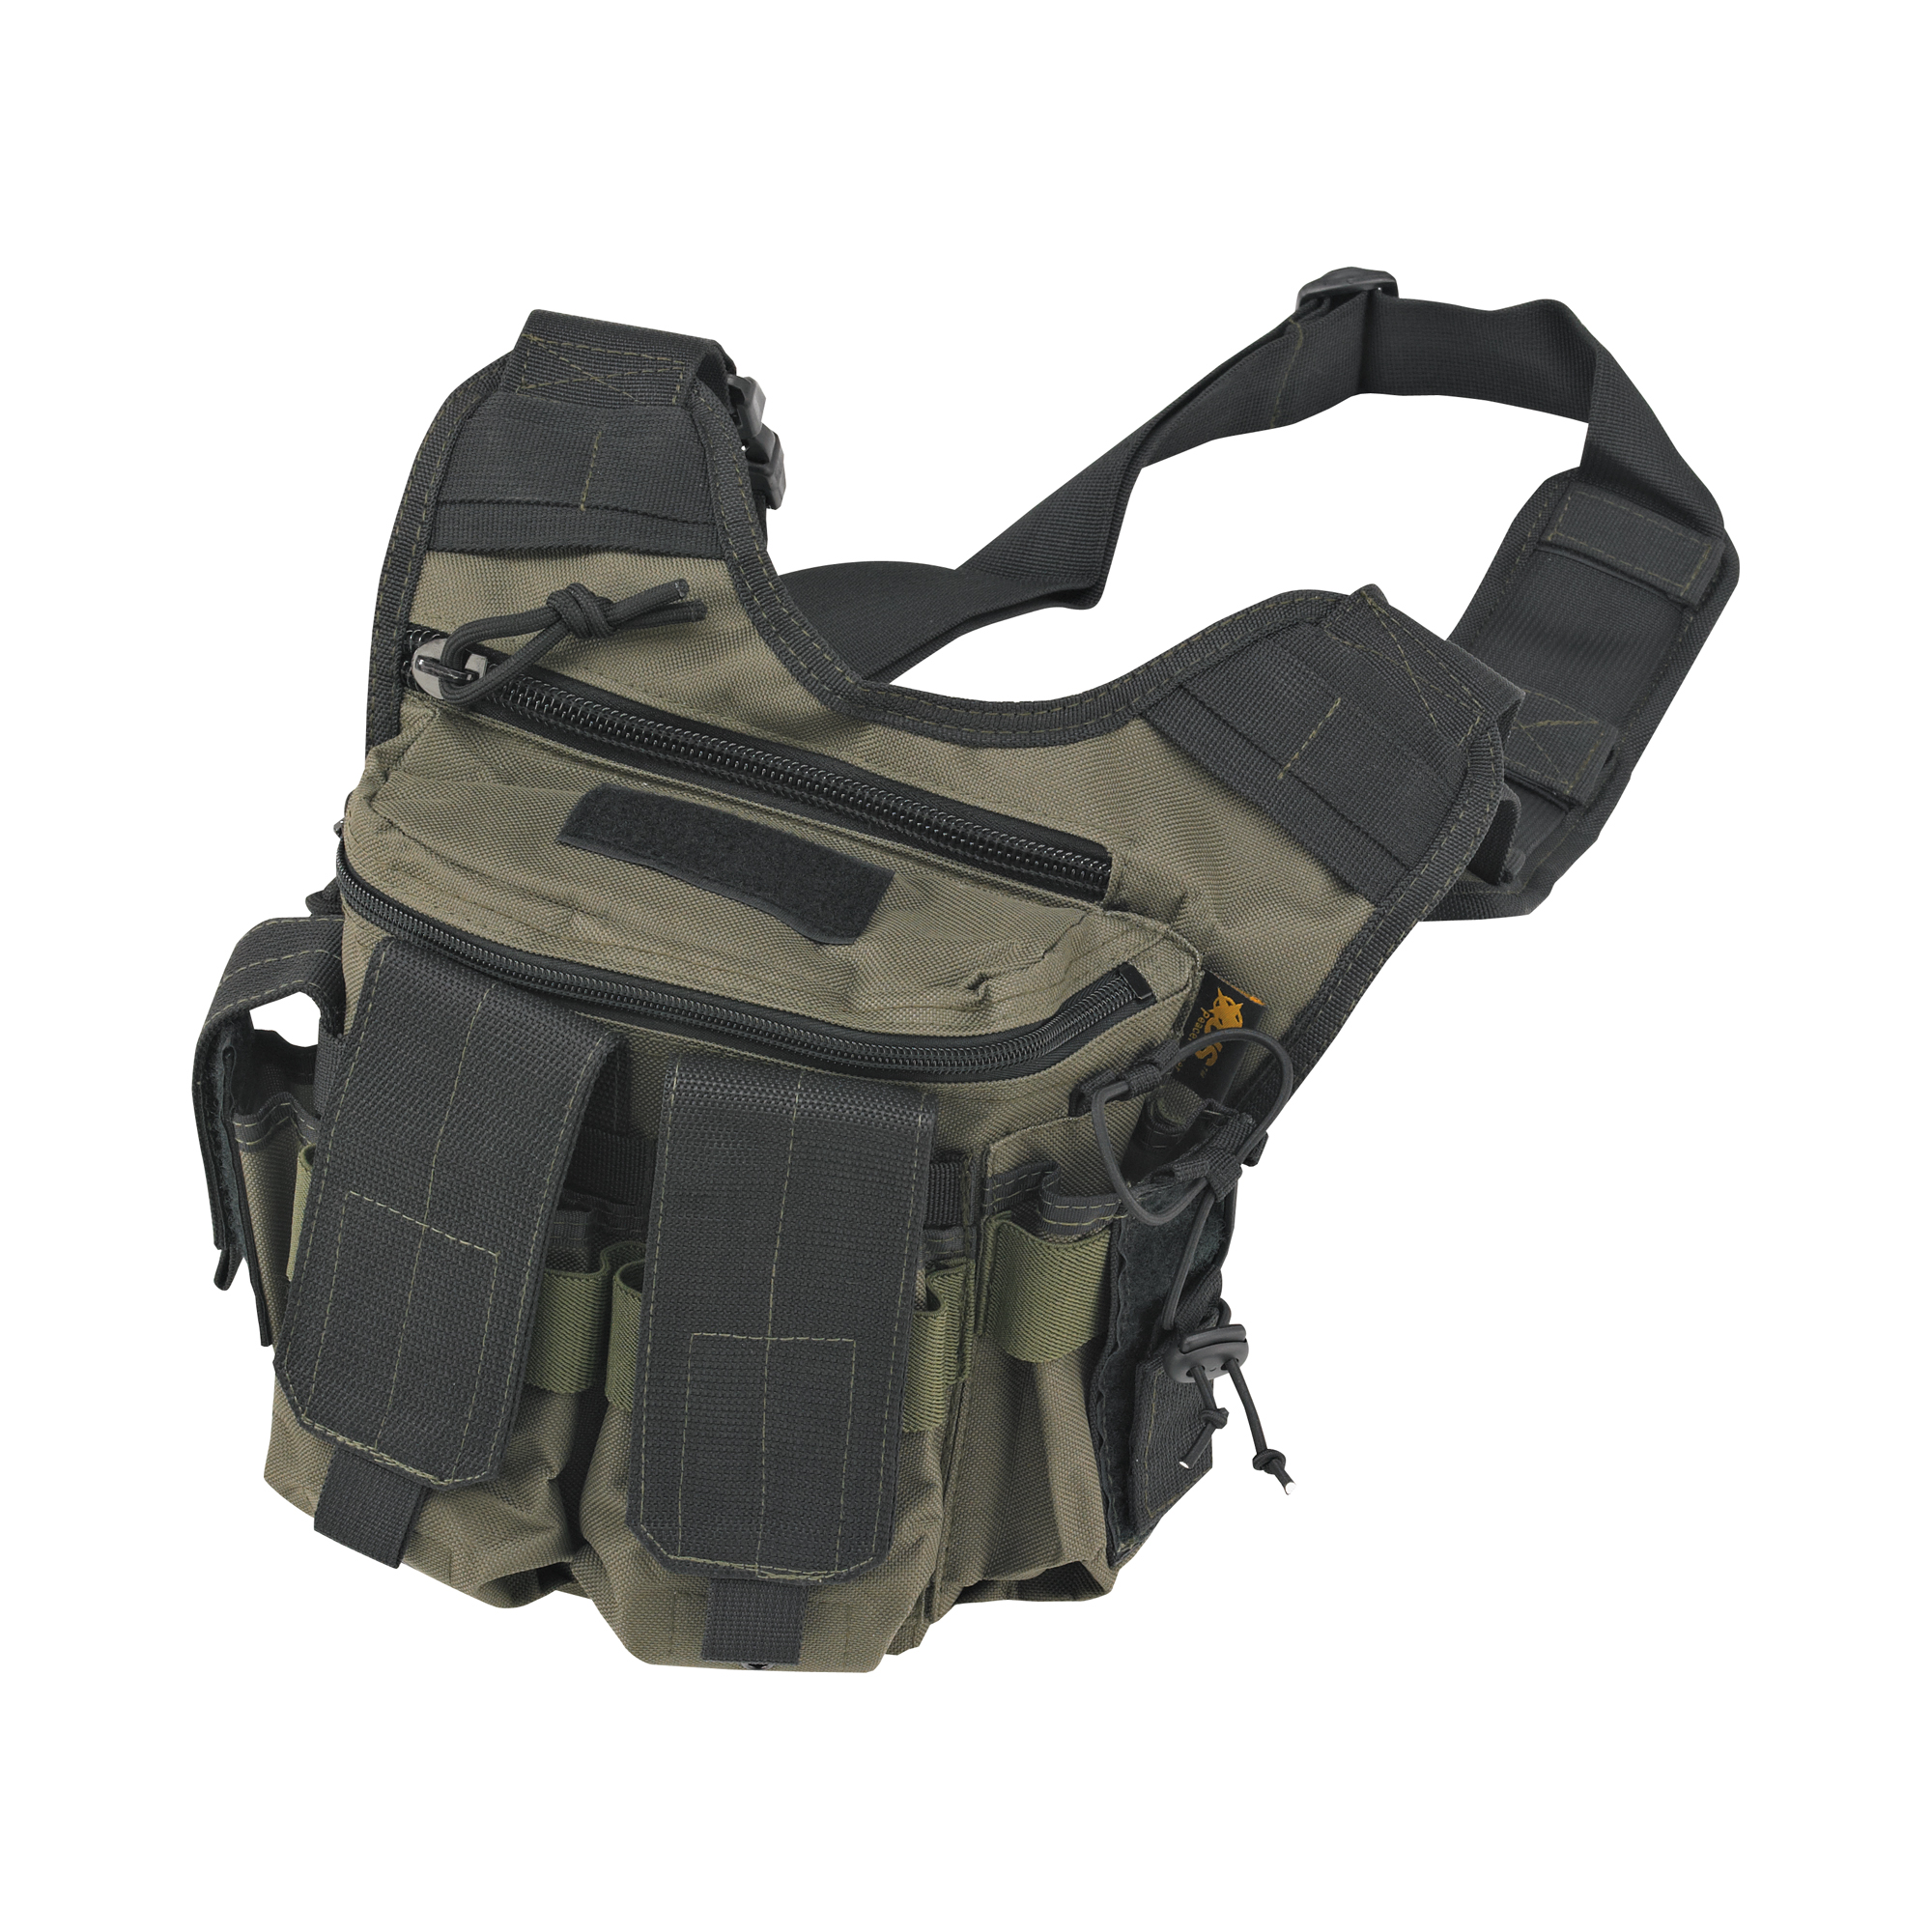 """The Rapid Deployment Pack is designed with one priority in mind"""" """"put all the stuff I really need where I can get to it fast"""". Whether you're a cop on patrol"""" a first responder"""" or a civilian that needs to be prepared for any situation"""" the Rapid Deployment Pack is the essential """"Grab and Go"""" bag for you."""